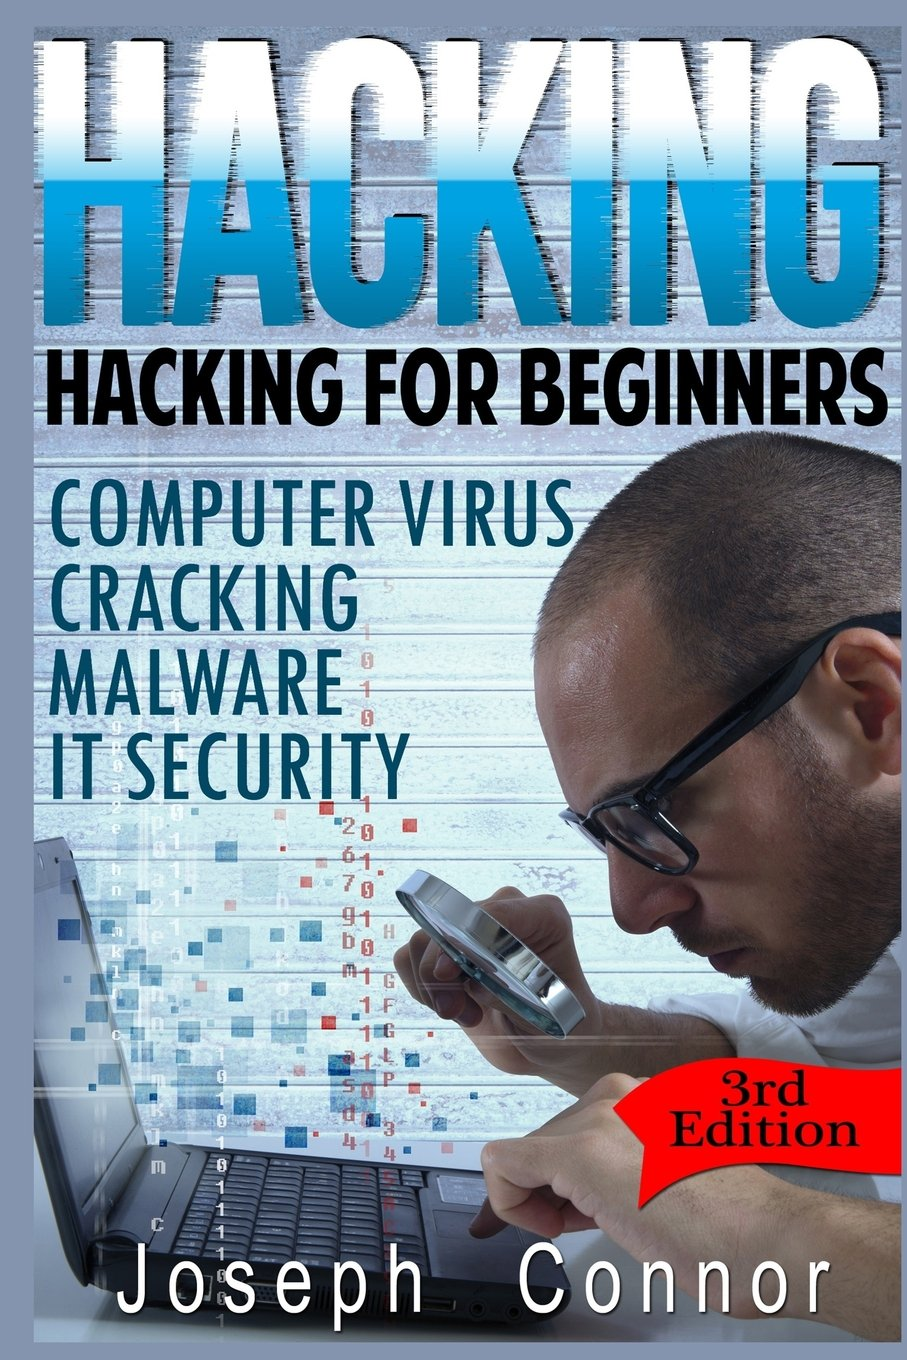 Hacking Ultimate Computer Cracking Security